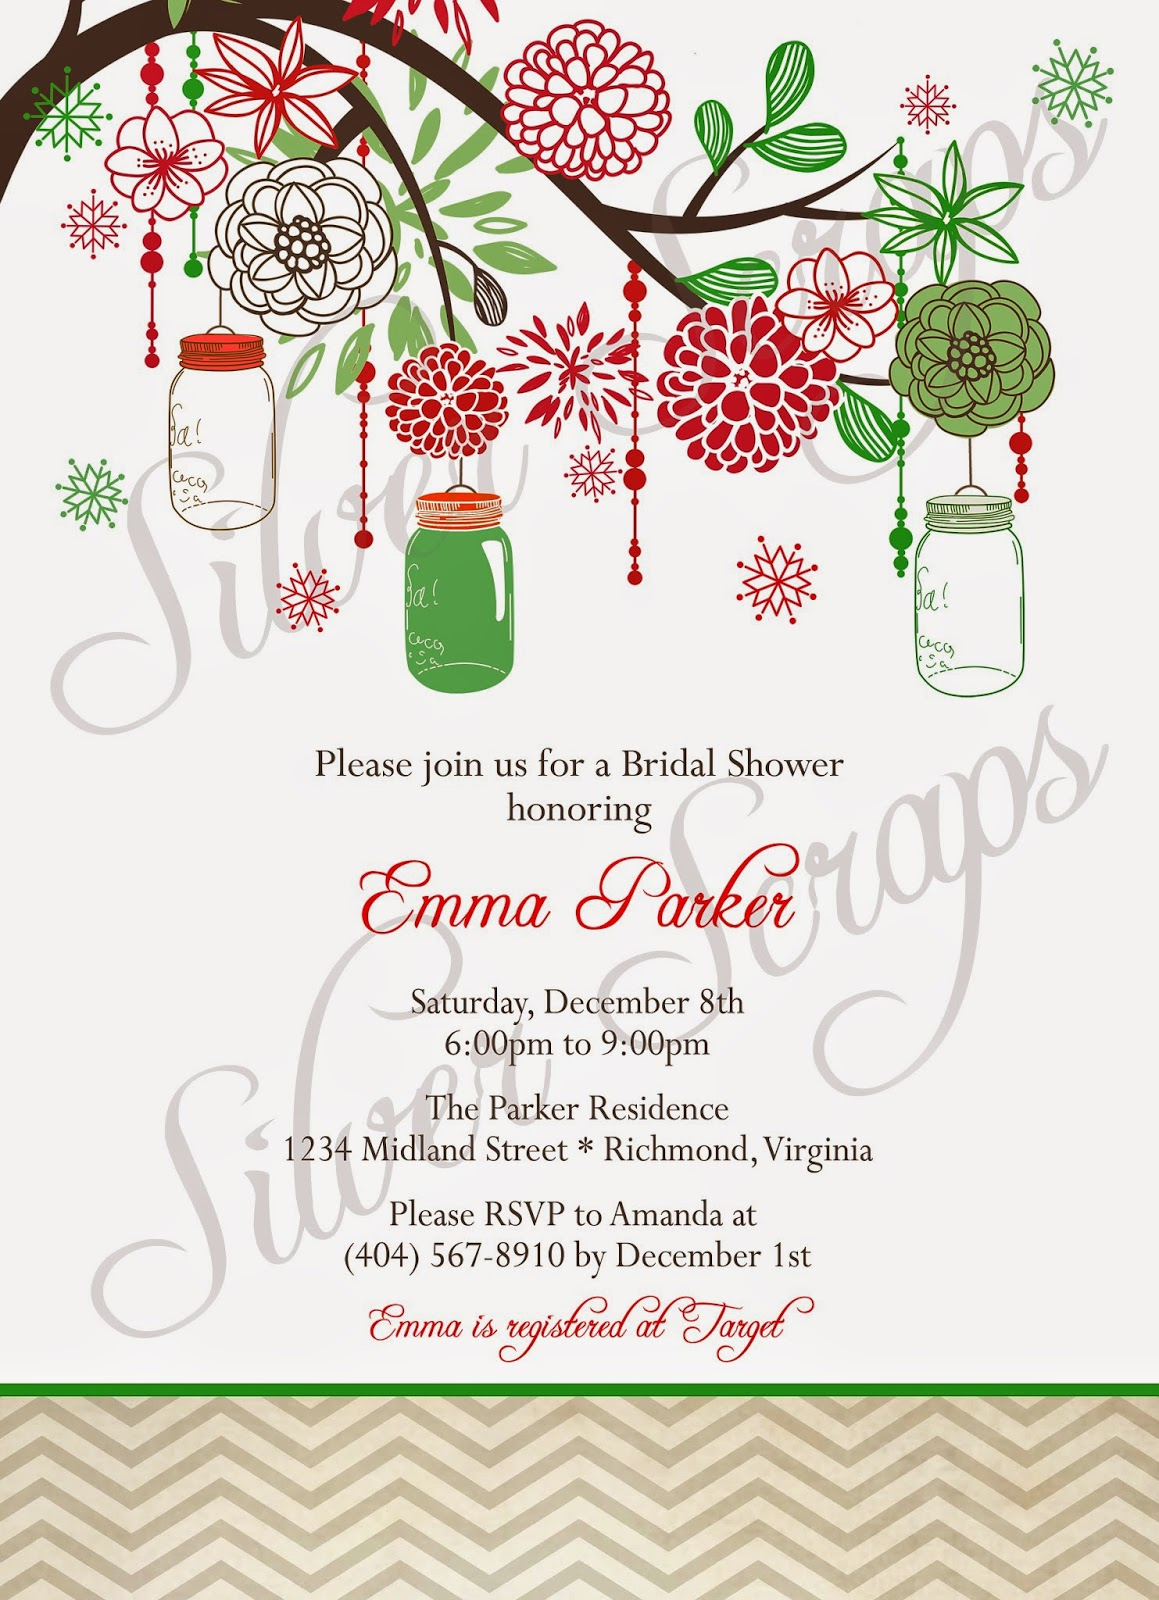 Vintage Christmas Mason Jars, Holiday Flowering Tree - Custom Rehearsal Dinner, Wedding, Bridal, Baby Shower, Engagement Party Invitation red green flowers floral chevron ball jar